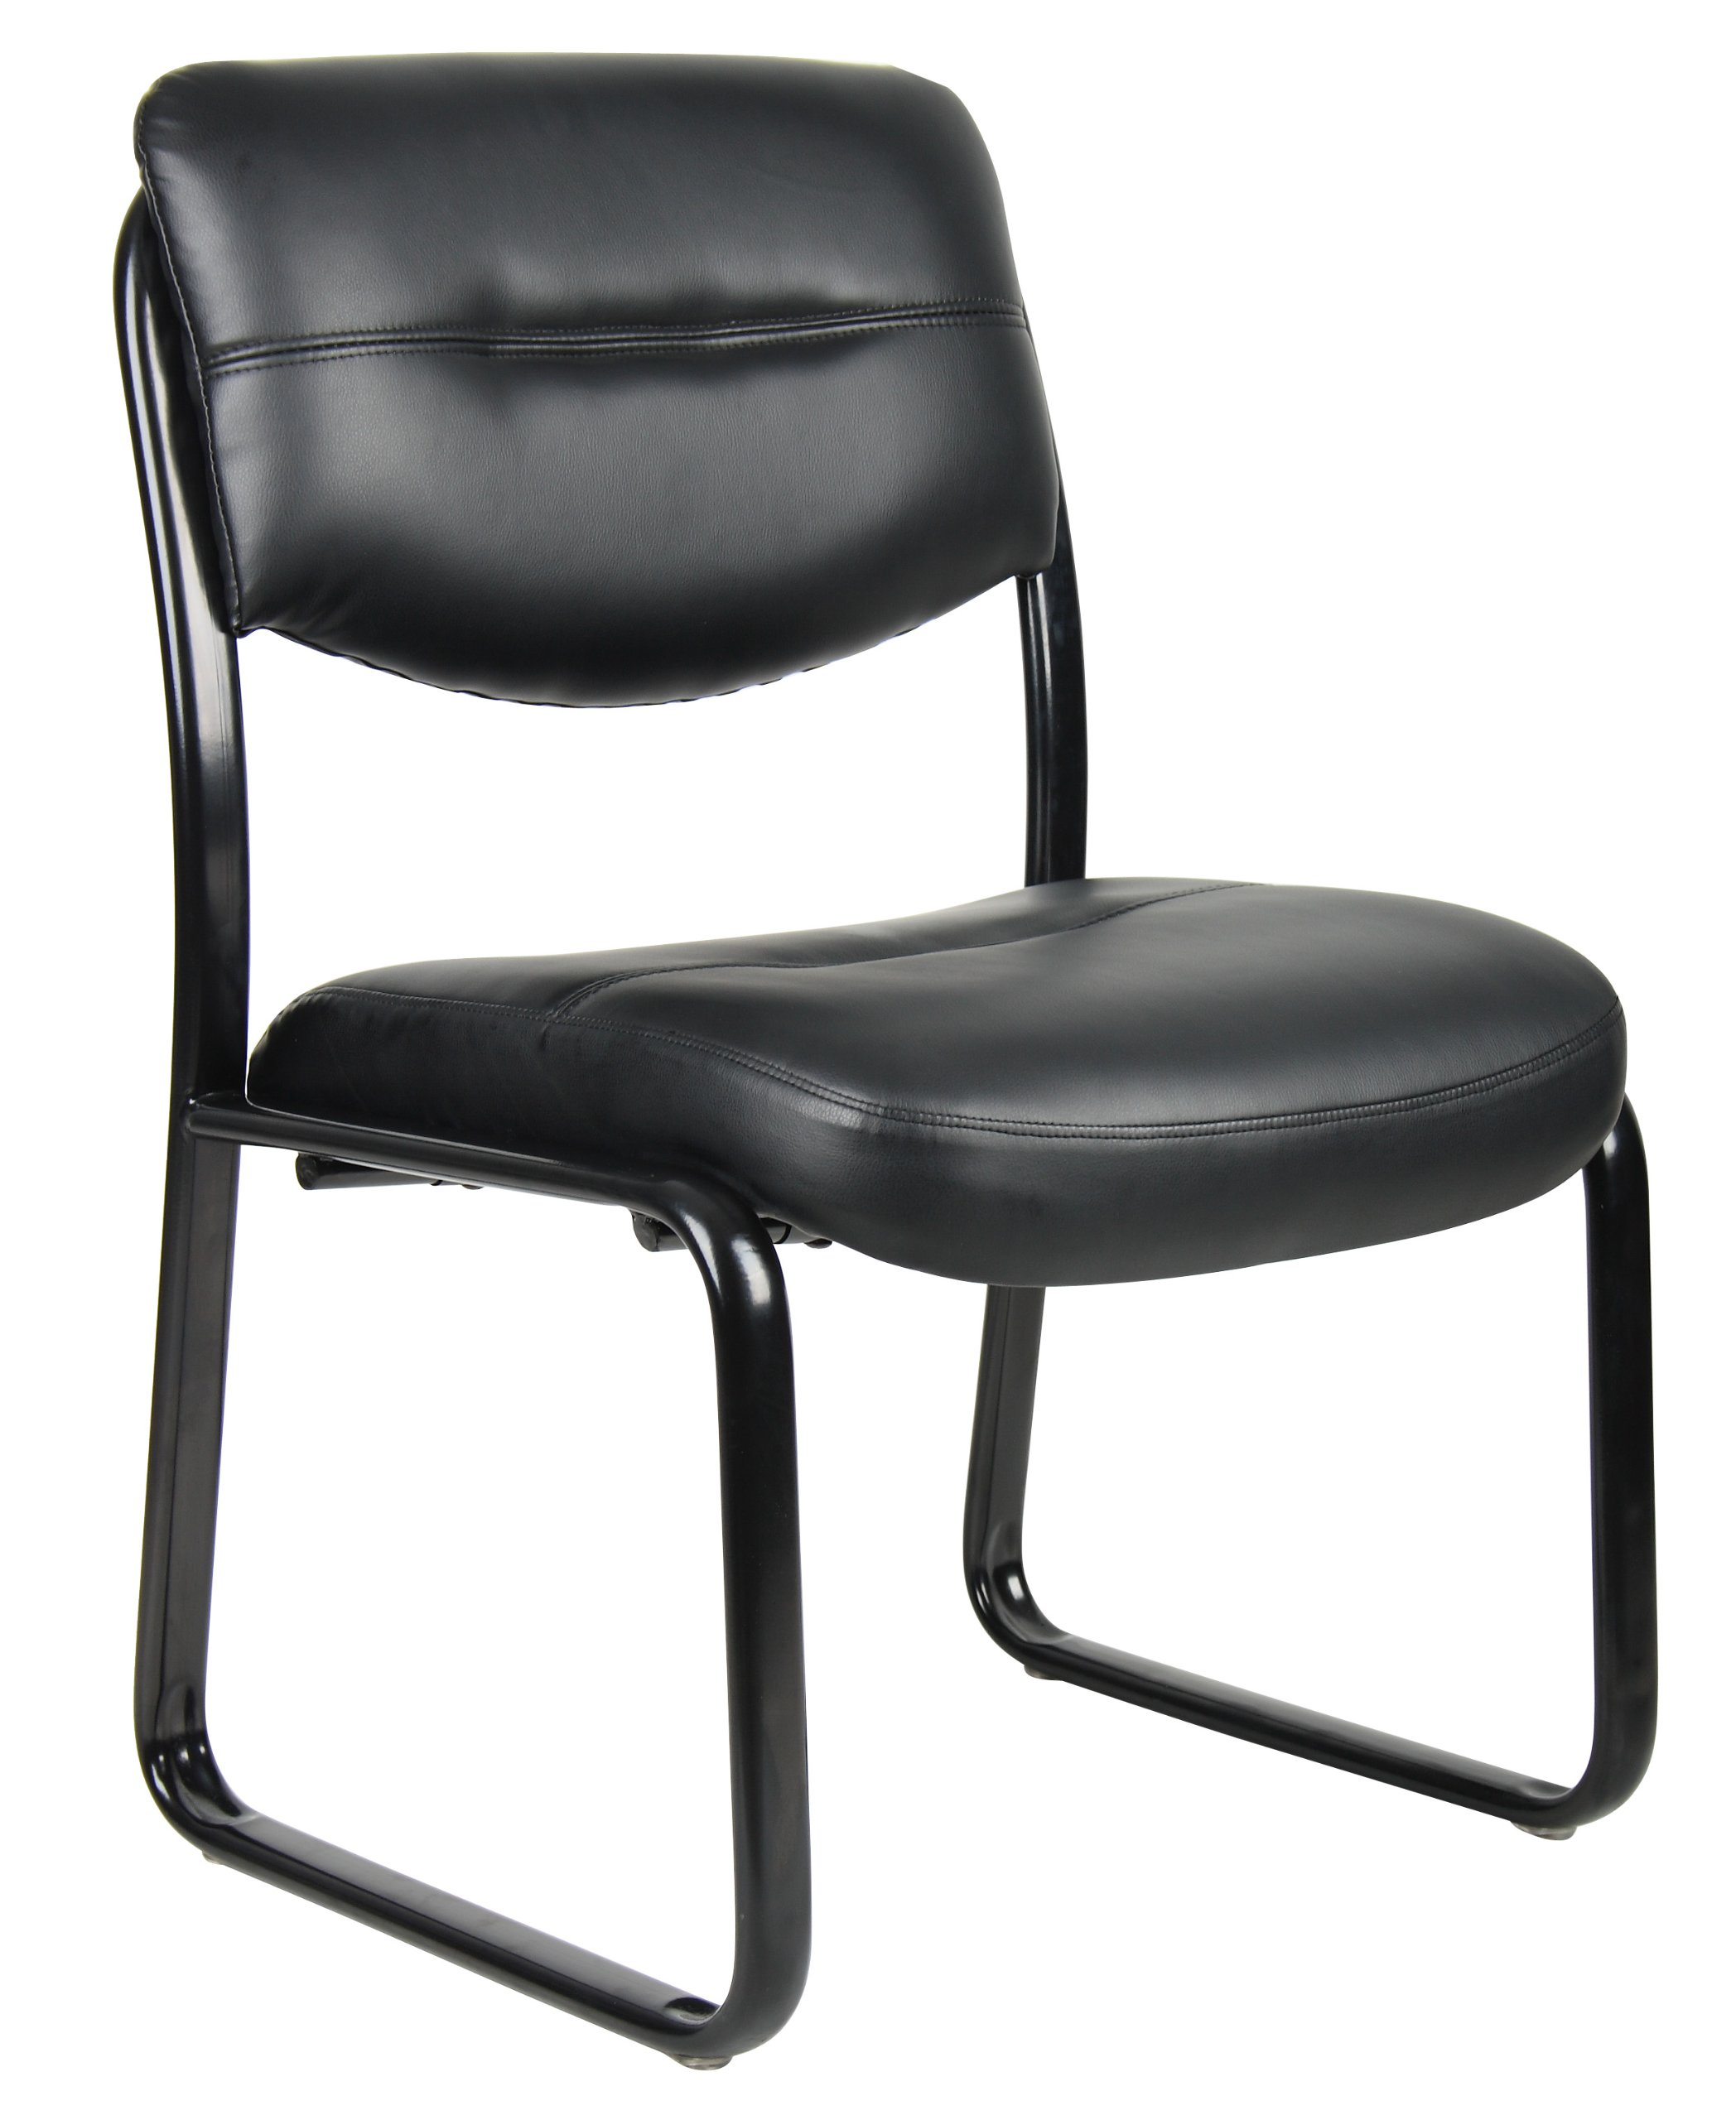 Boss Office Products B9539 Leather Sled Base Side Chair in Black by Boss Office Products